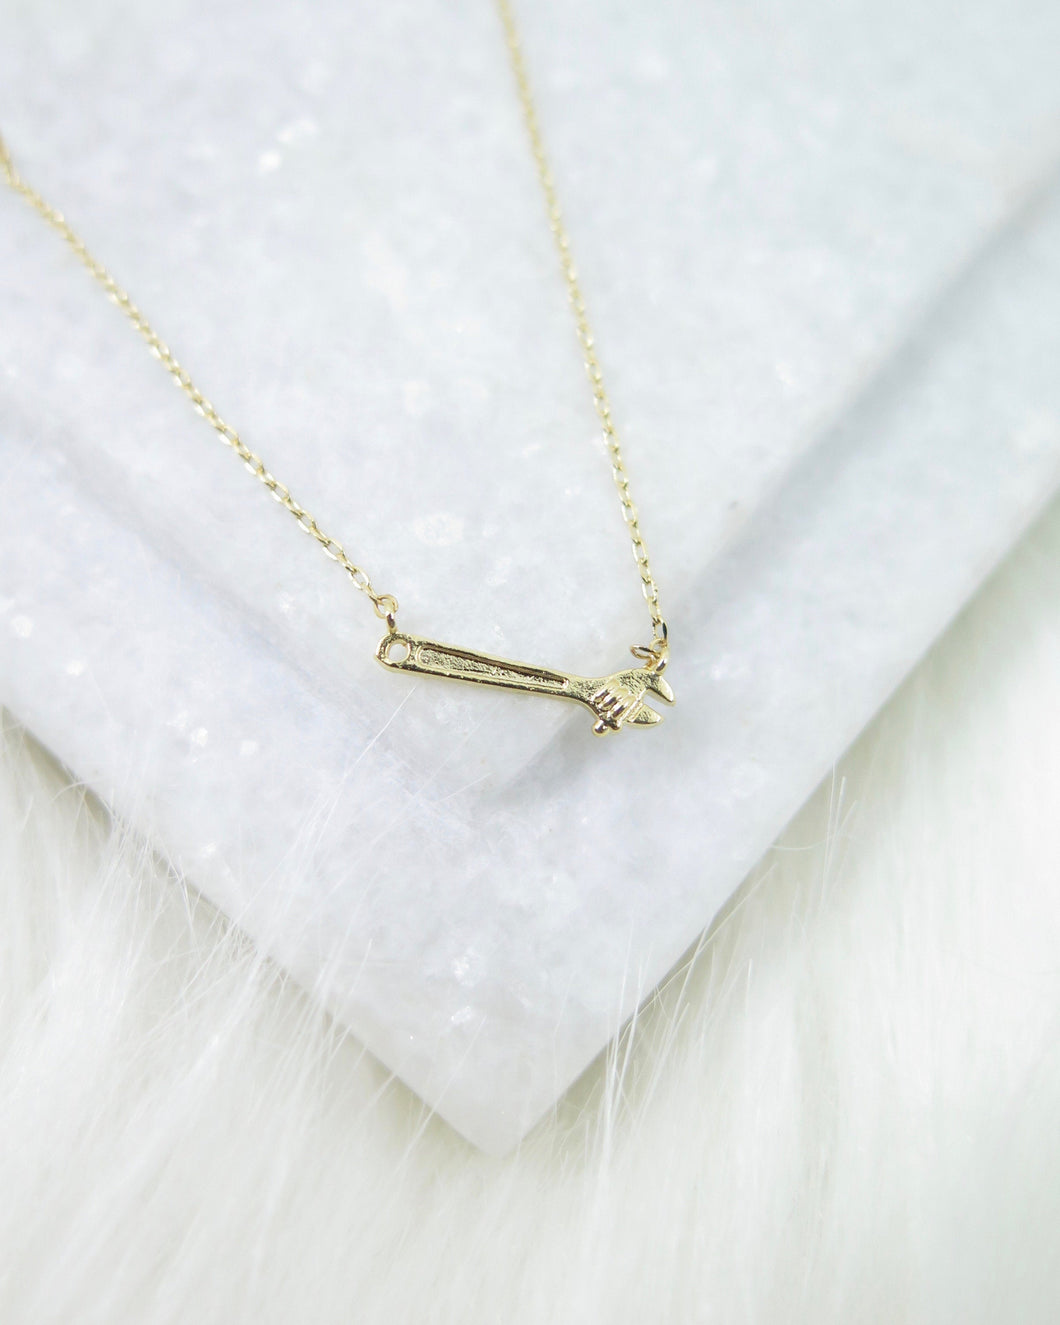 Gold Plated Tiny Wrench Necklace